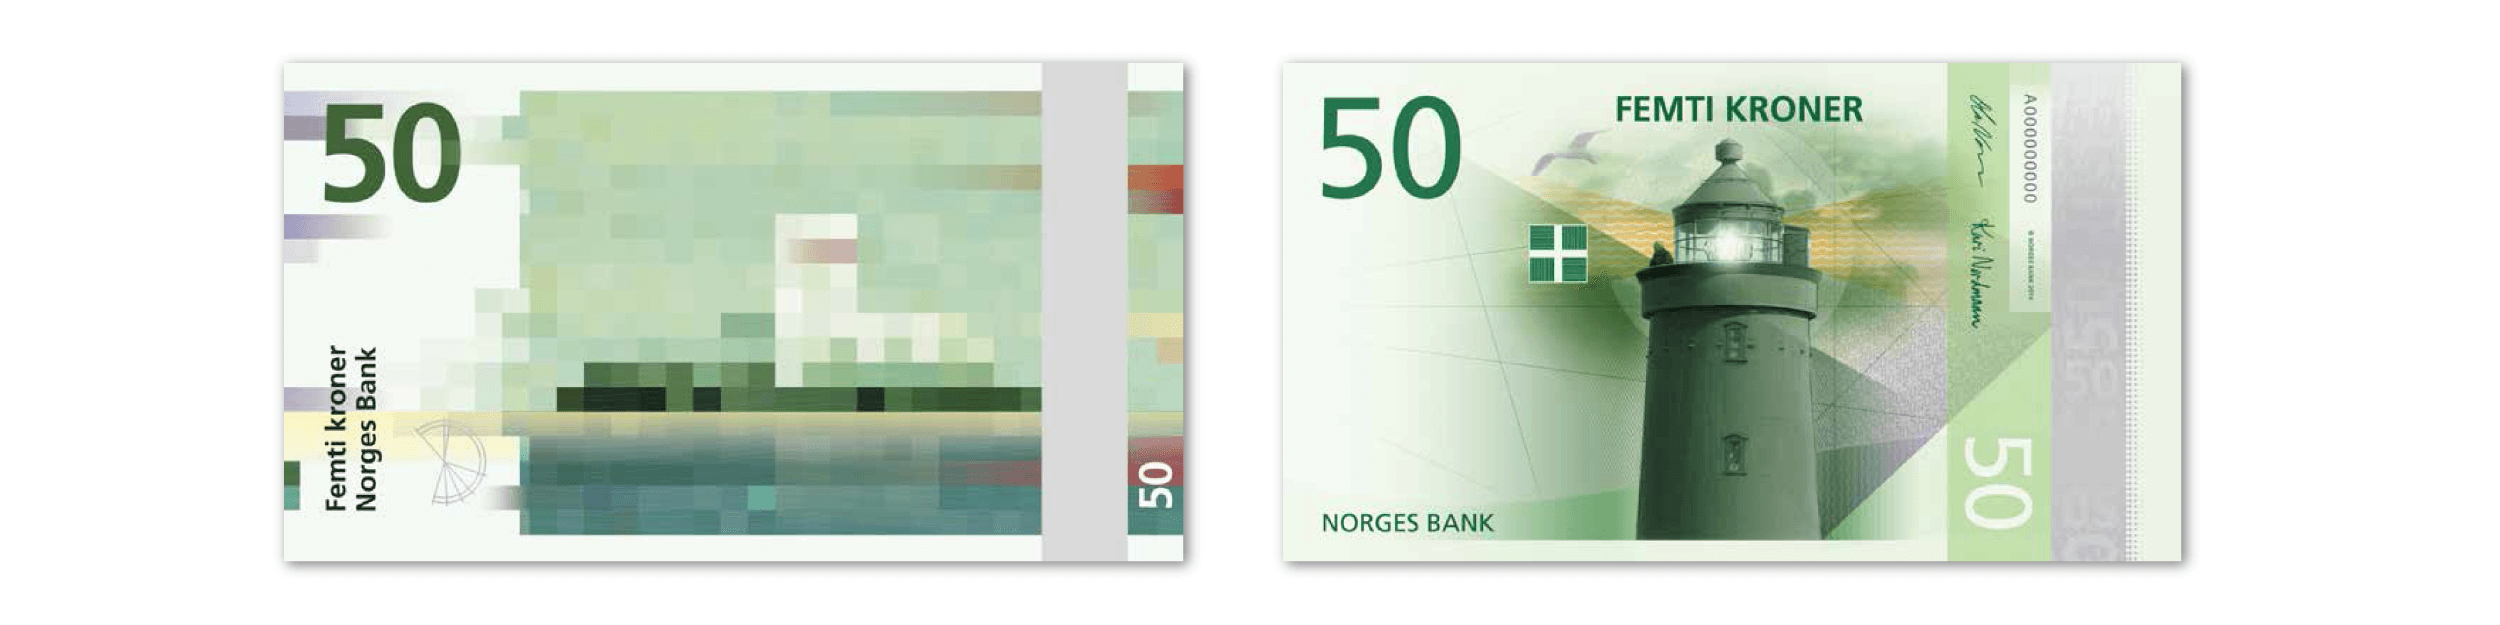 Norway Currency Redesign_50-kroner